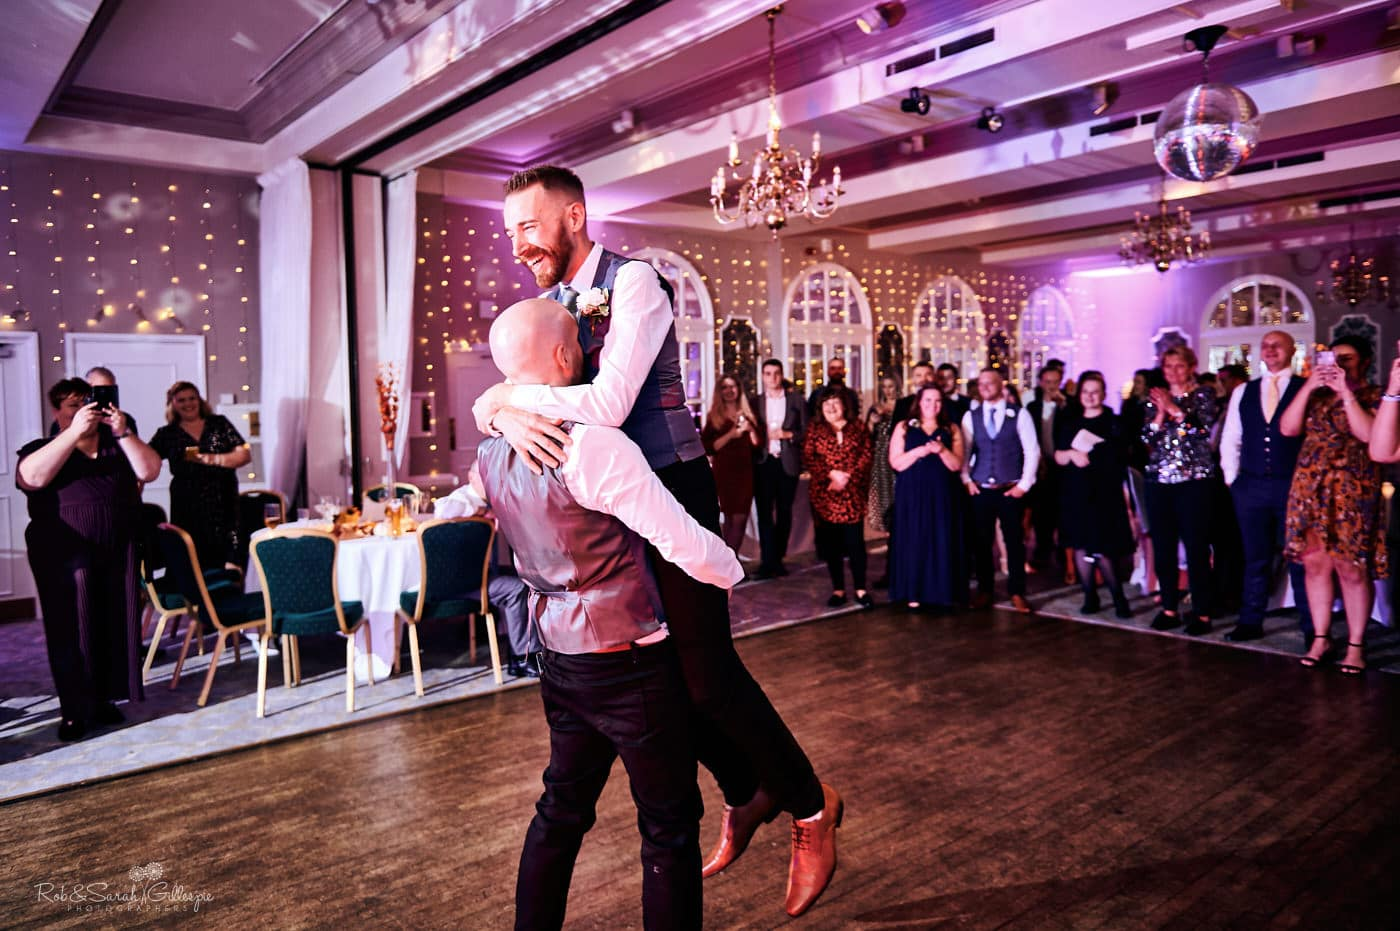 Two grooms first dance at Moor Hall Hotel wedding